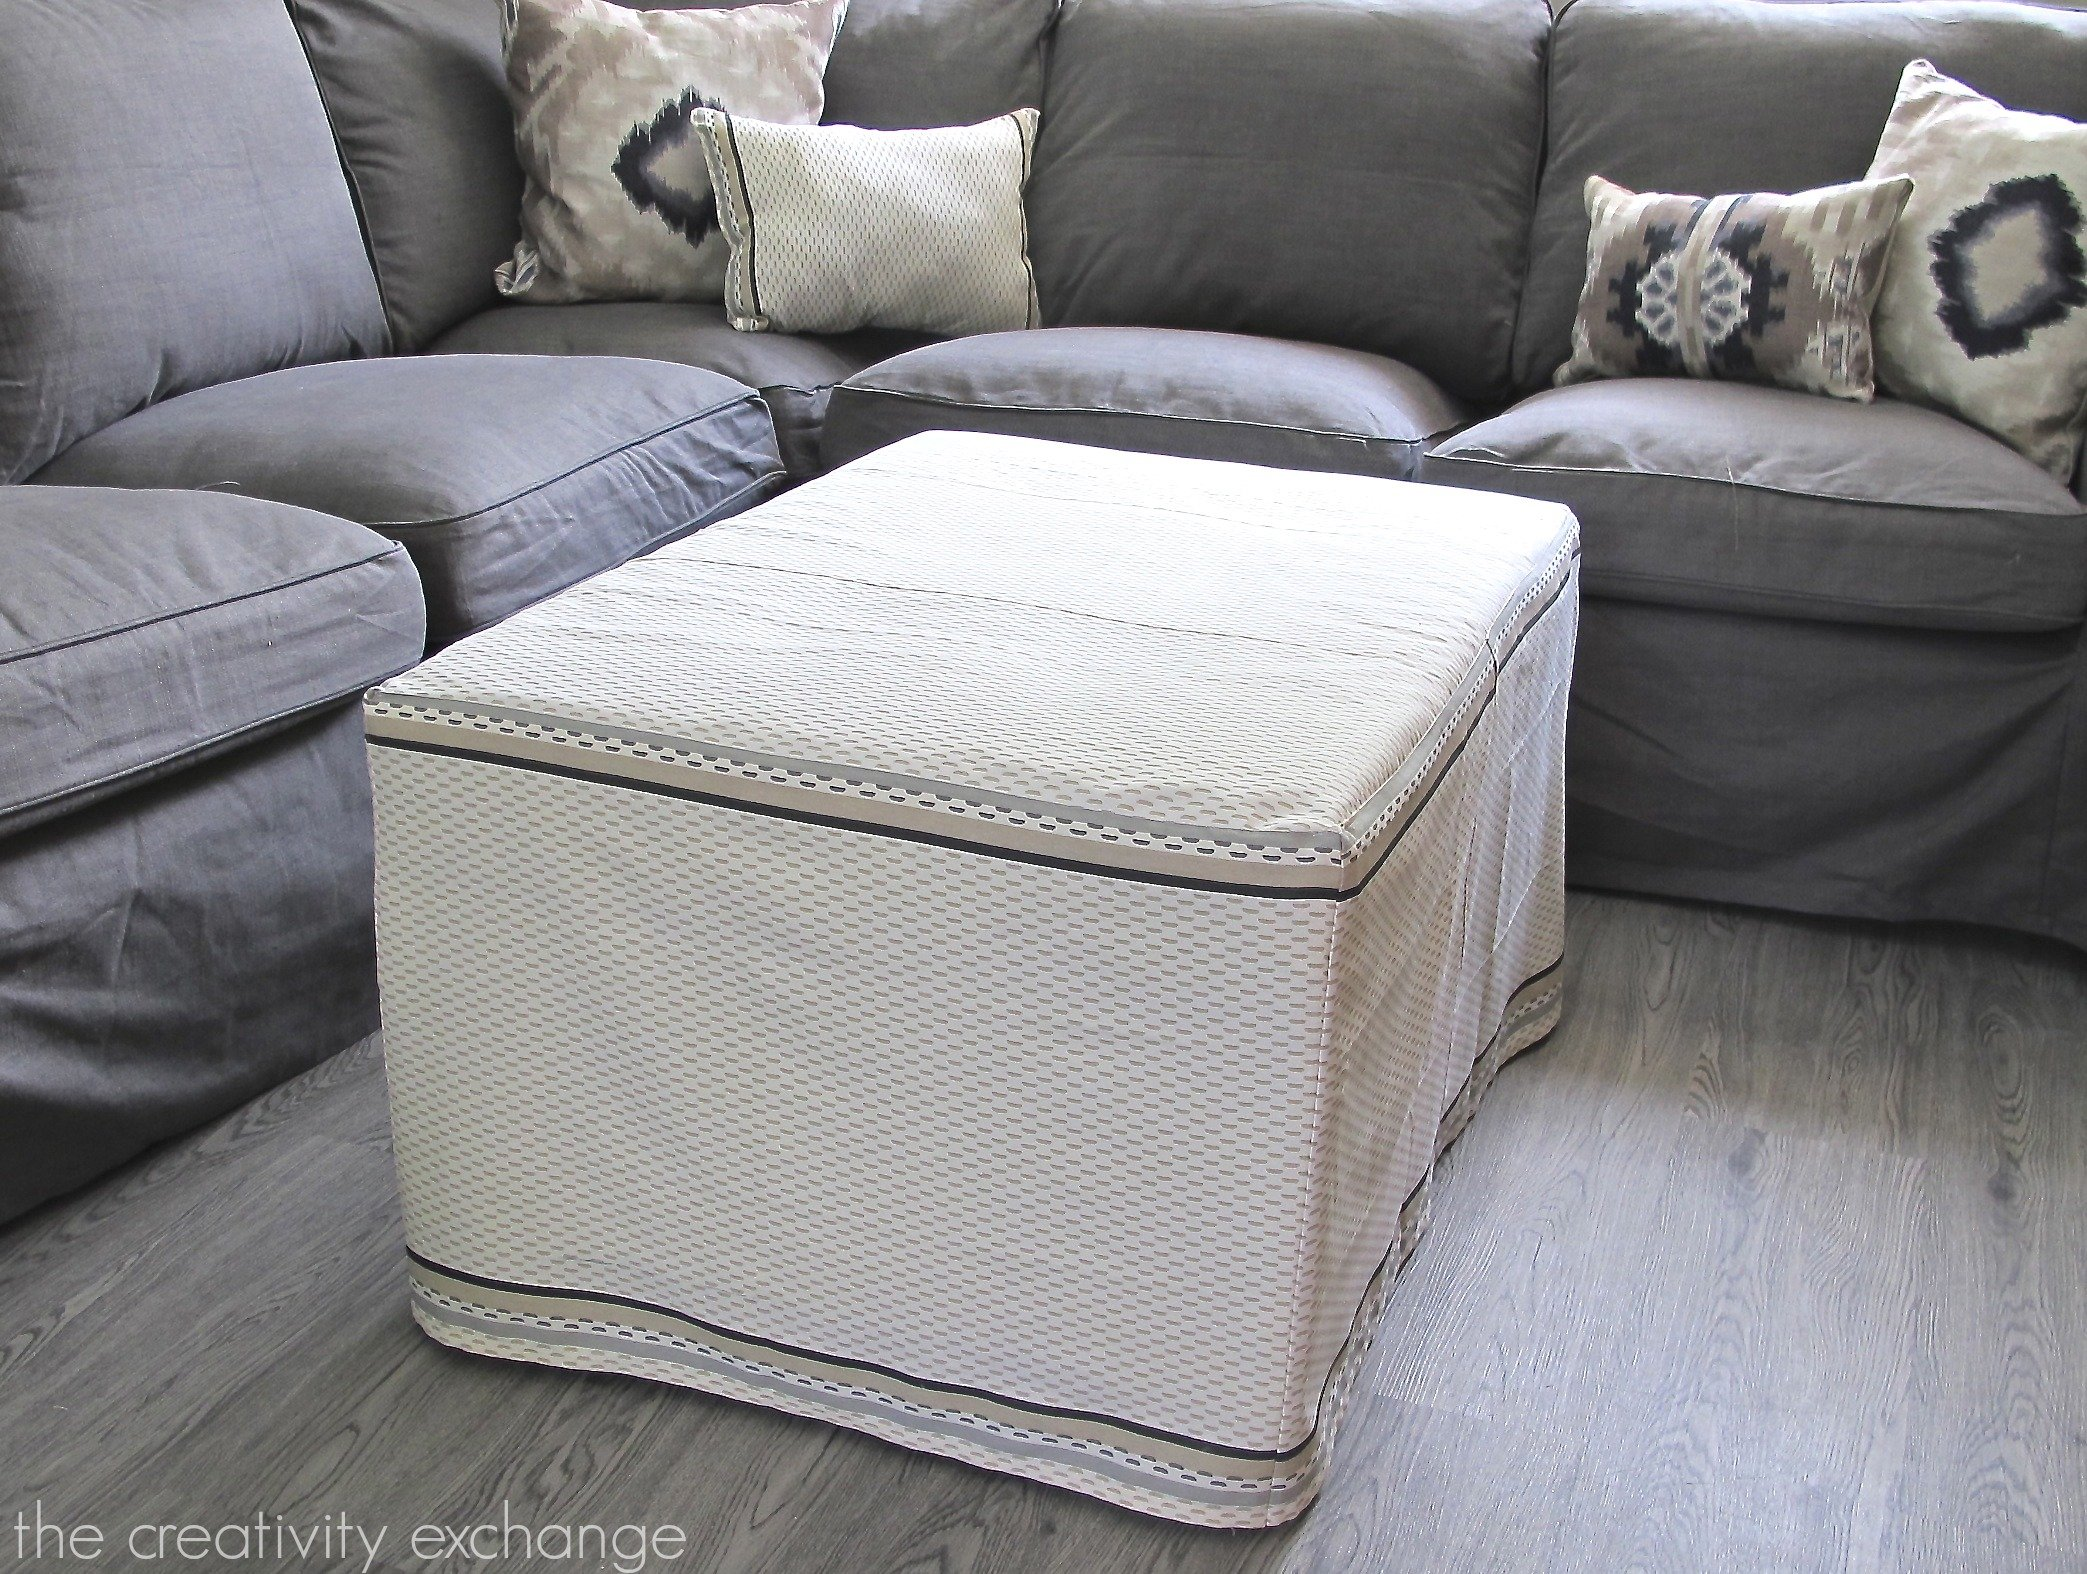 My Dish Towel Ottoman Slipcover Office Craft Room Update